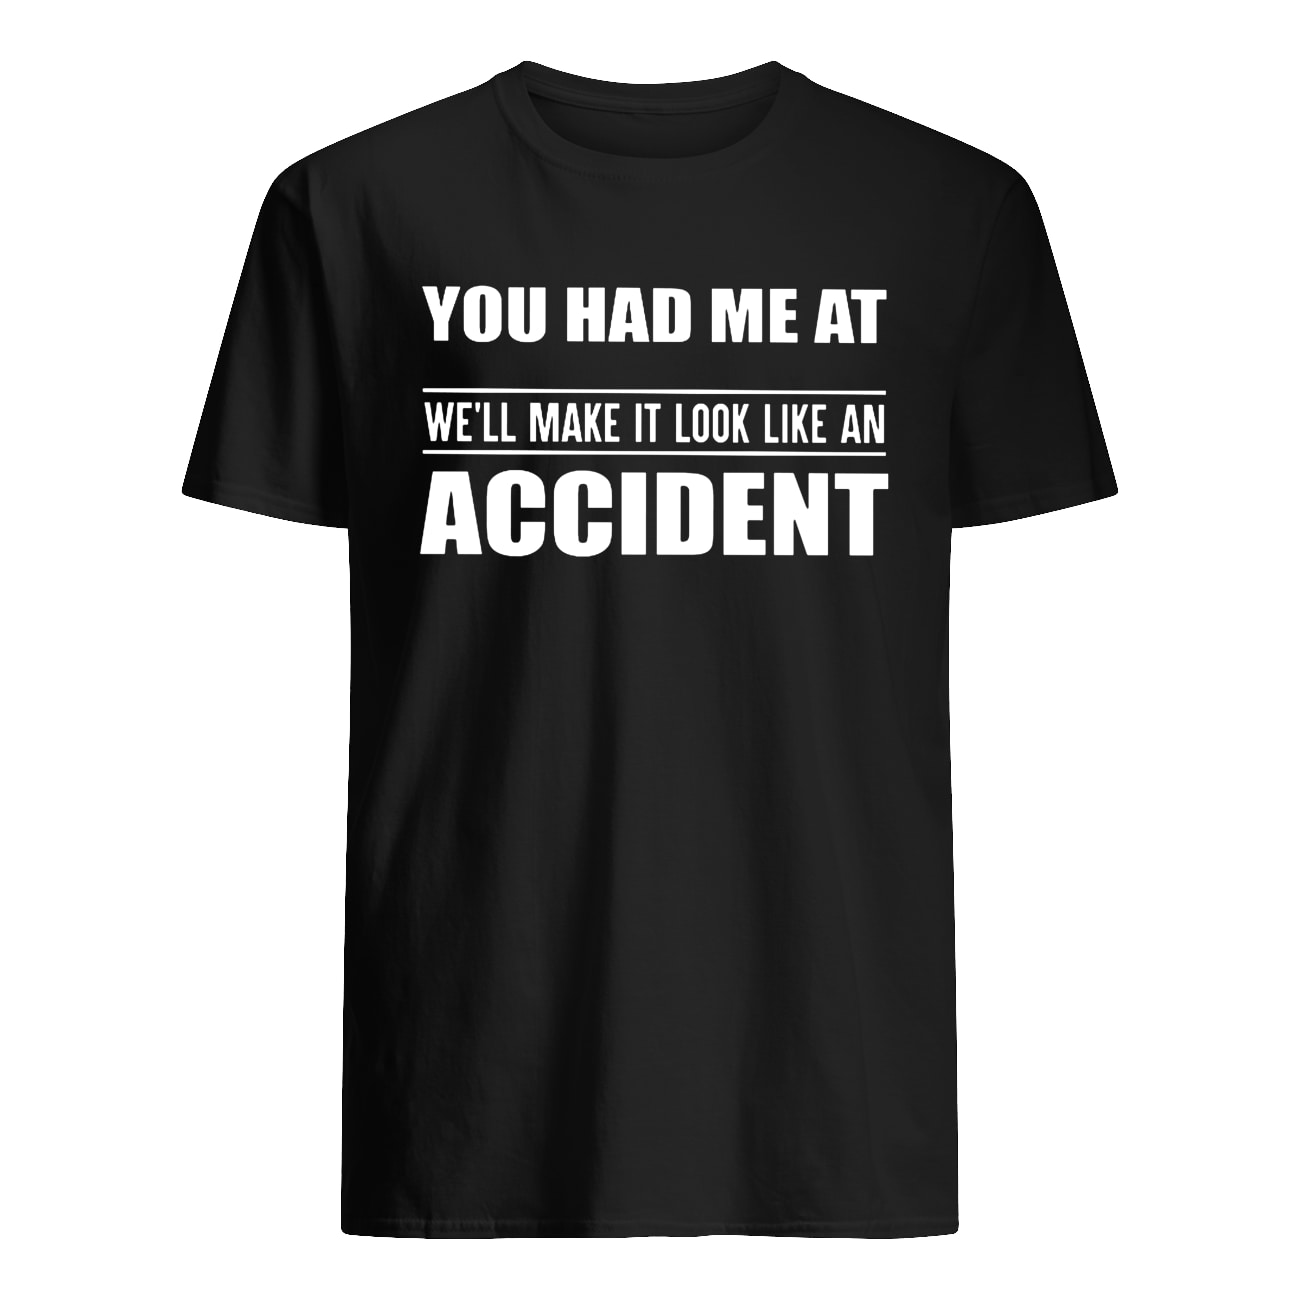 You had me at we'll make it look like an accident mens shirt